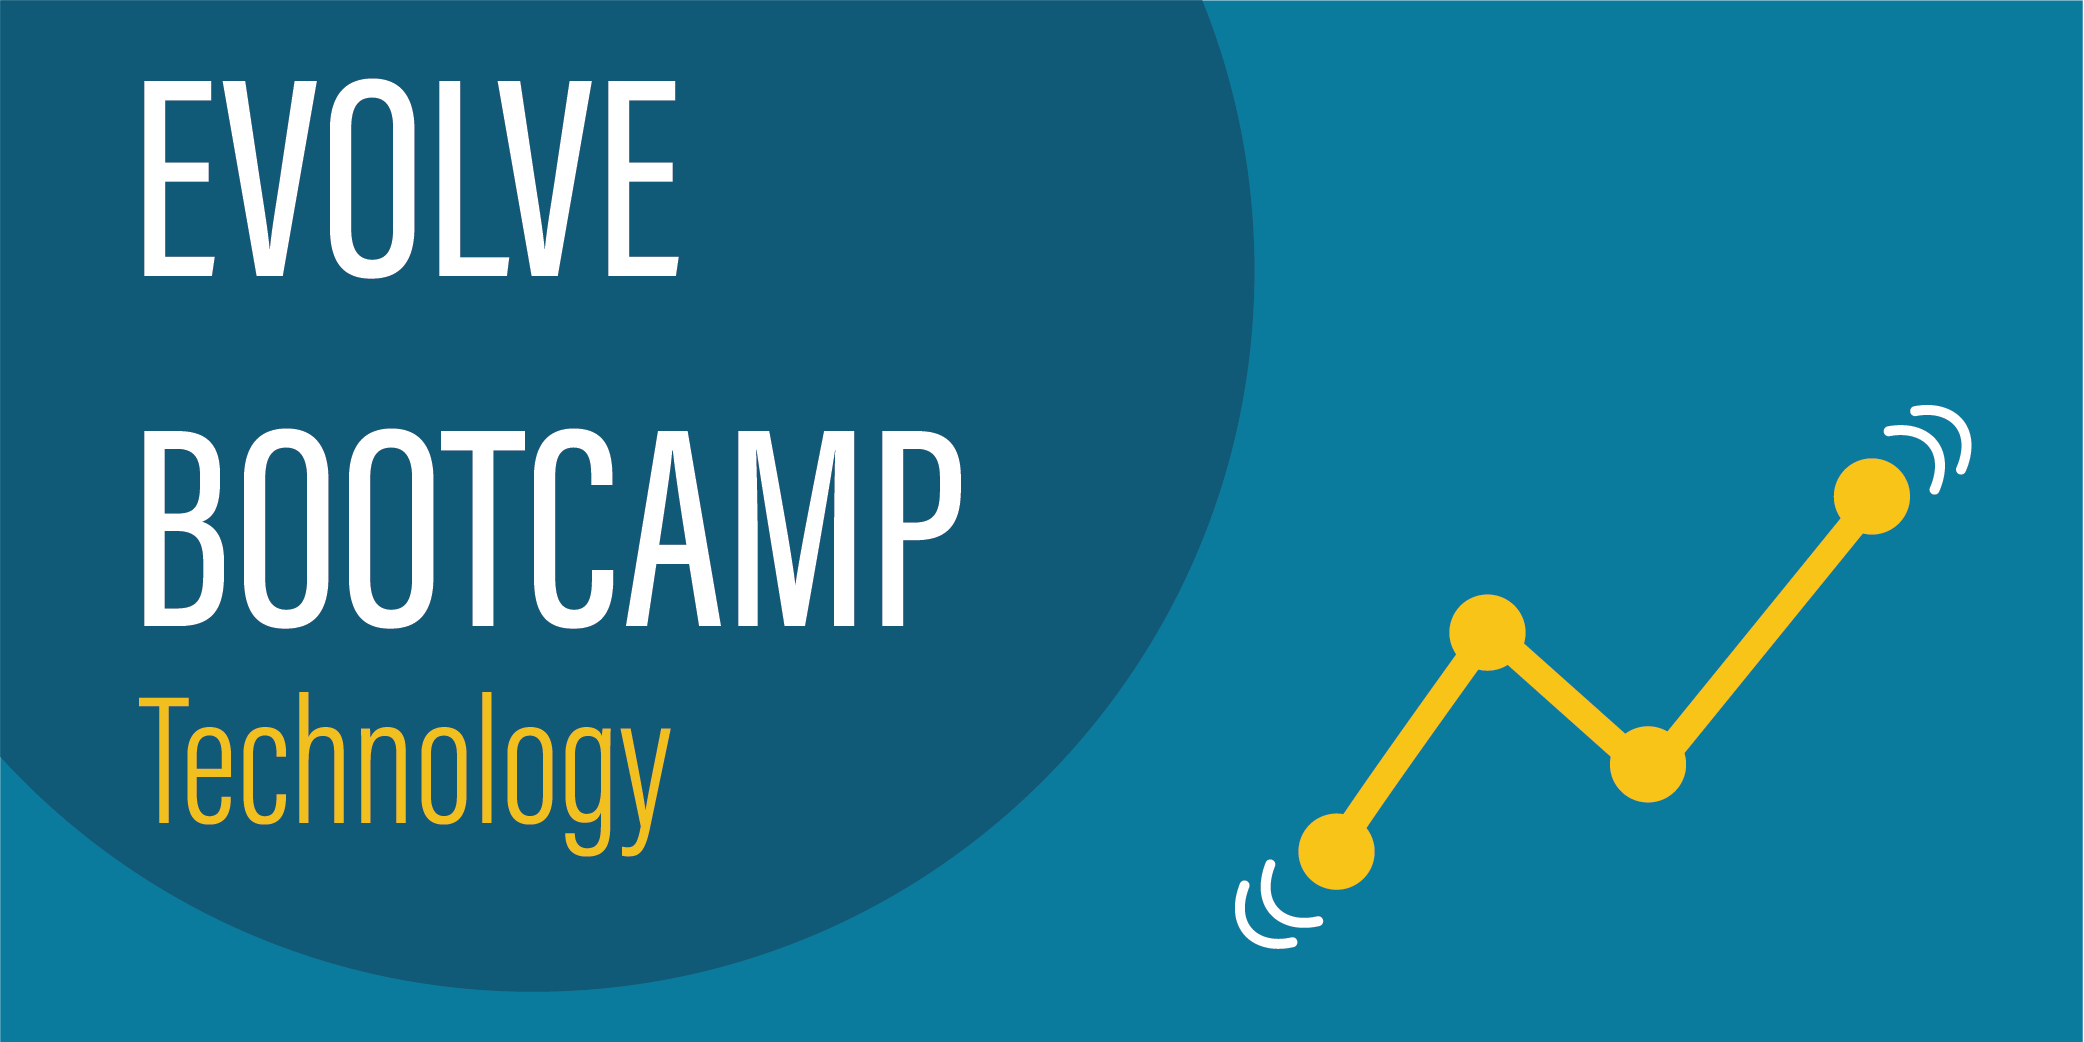 Evolve Bootcamp Technology